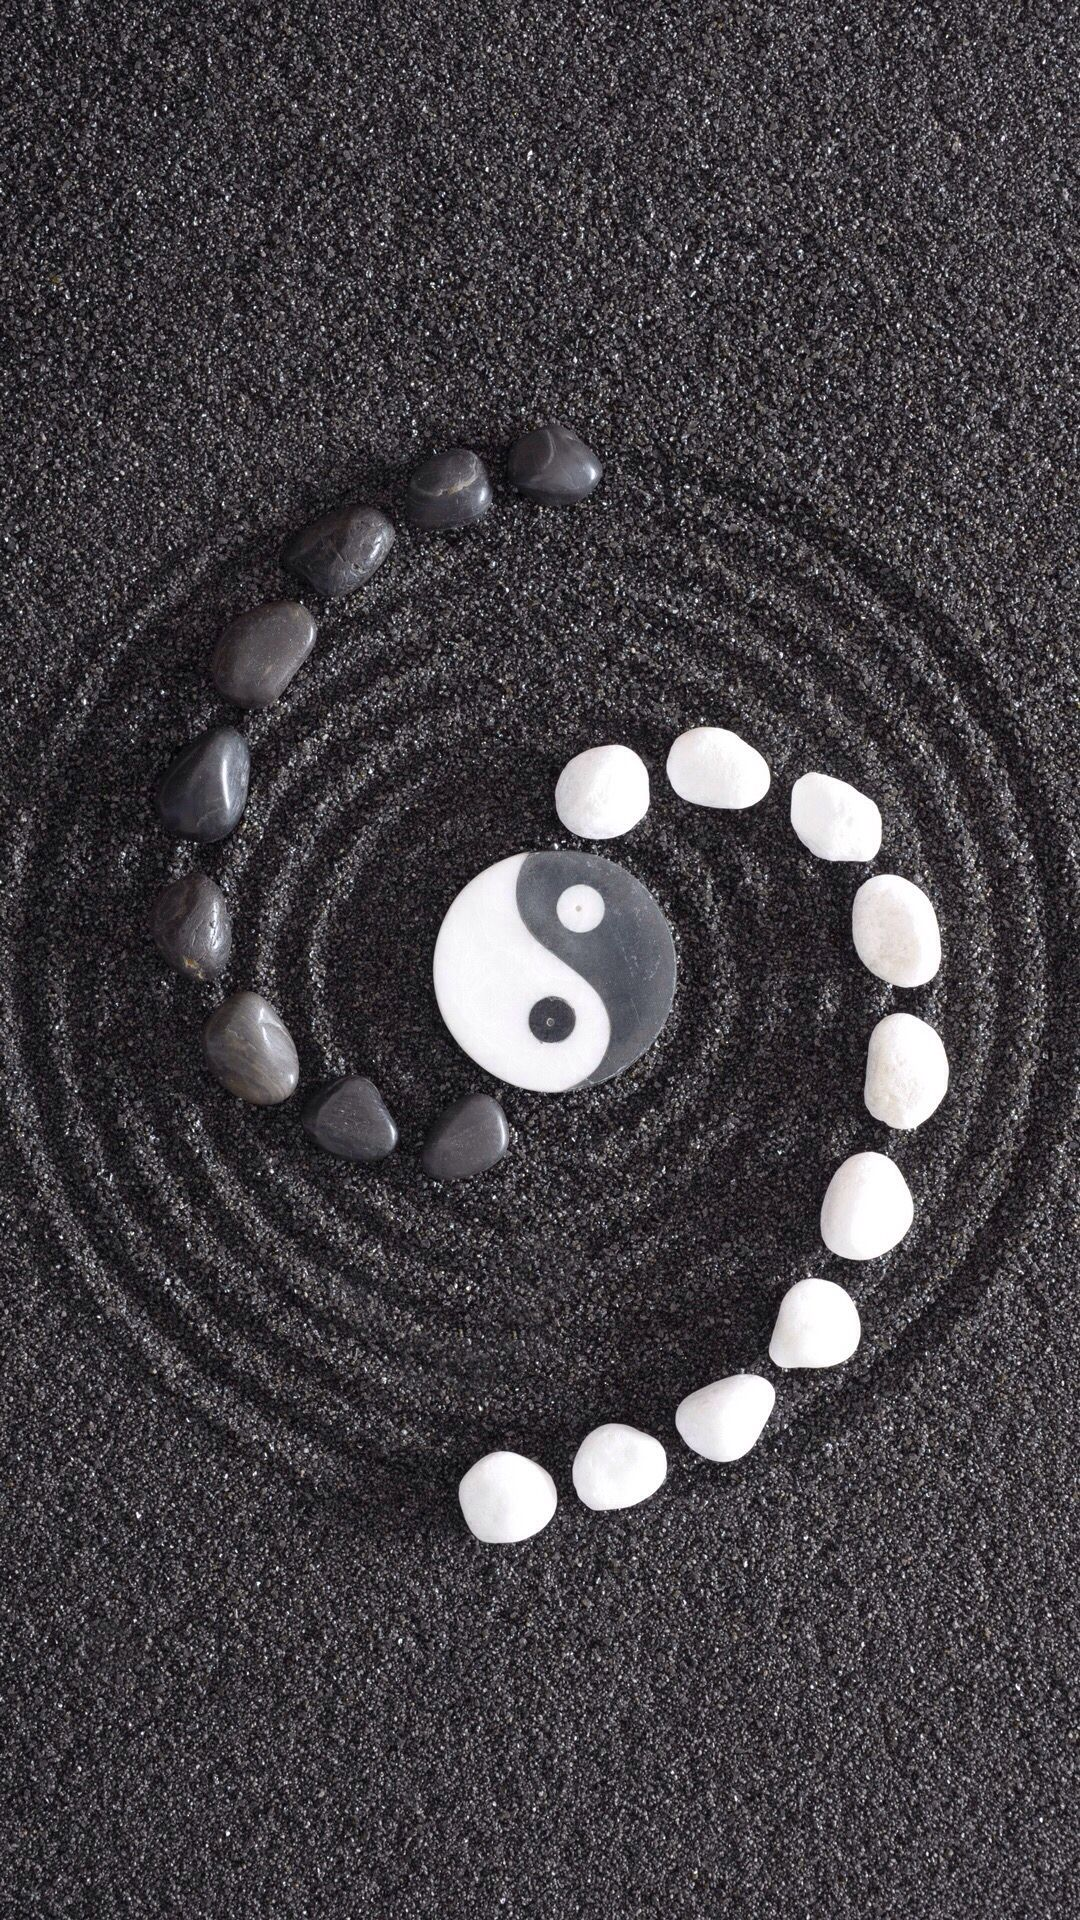 Pin By Wallpapers Phone Pad Hd On 9 16 Phone Ying Yang Wallpaper Ying Yang Ying Yang Art